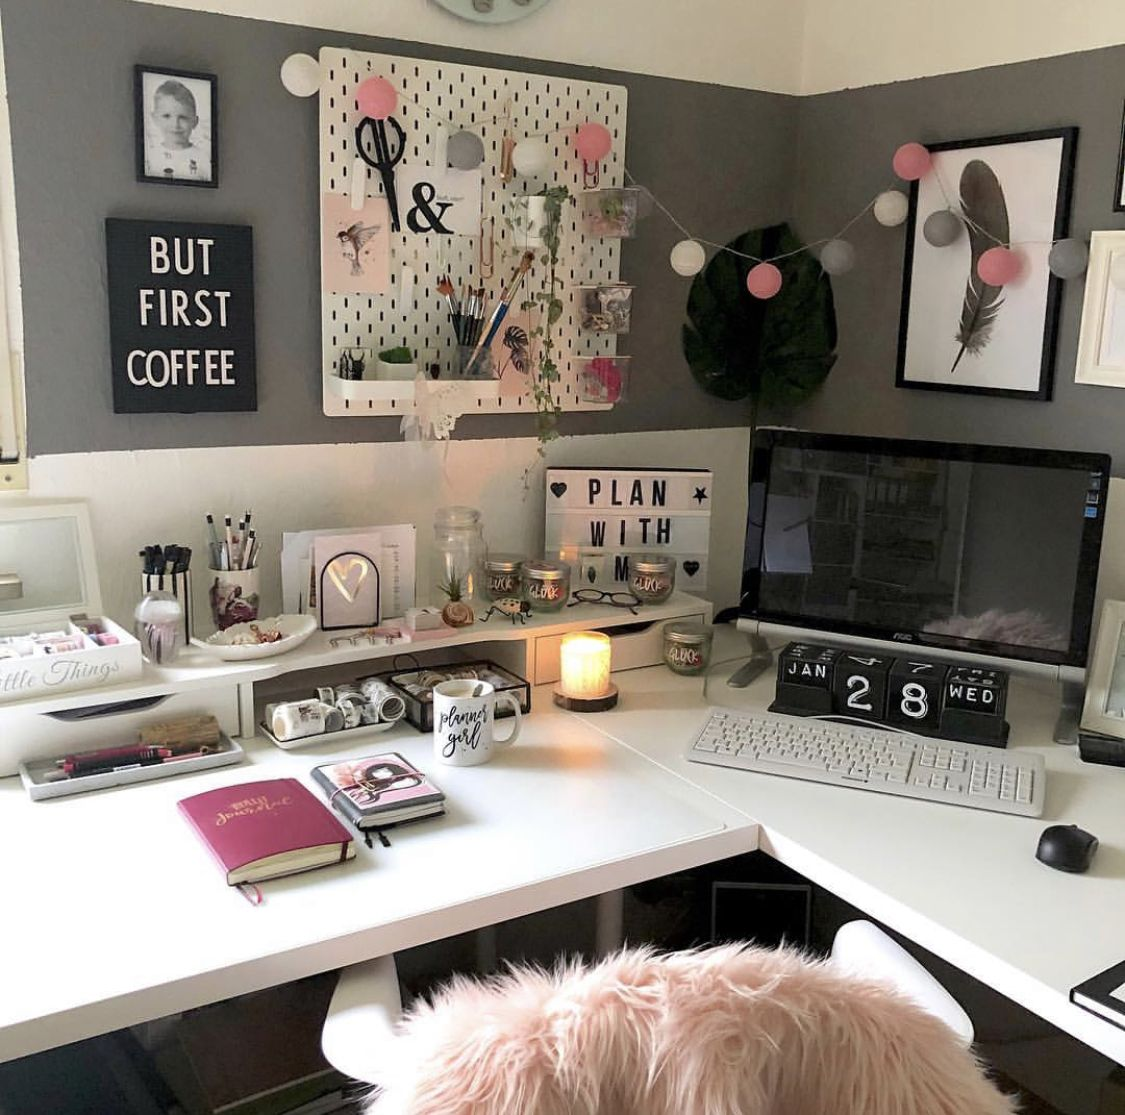 Pin by Donnie Nicole on Home Office/Scrapbook Rooms in